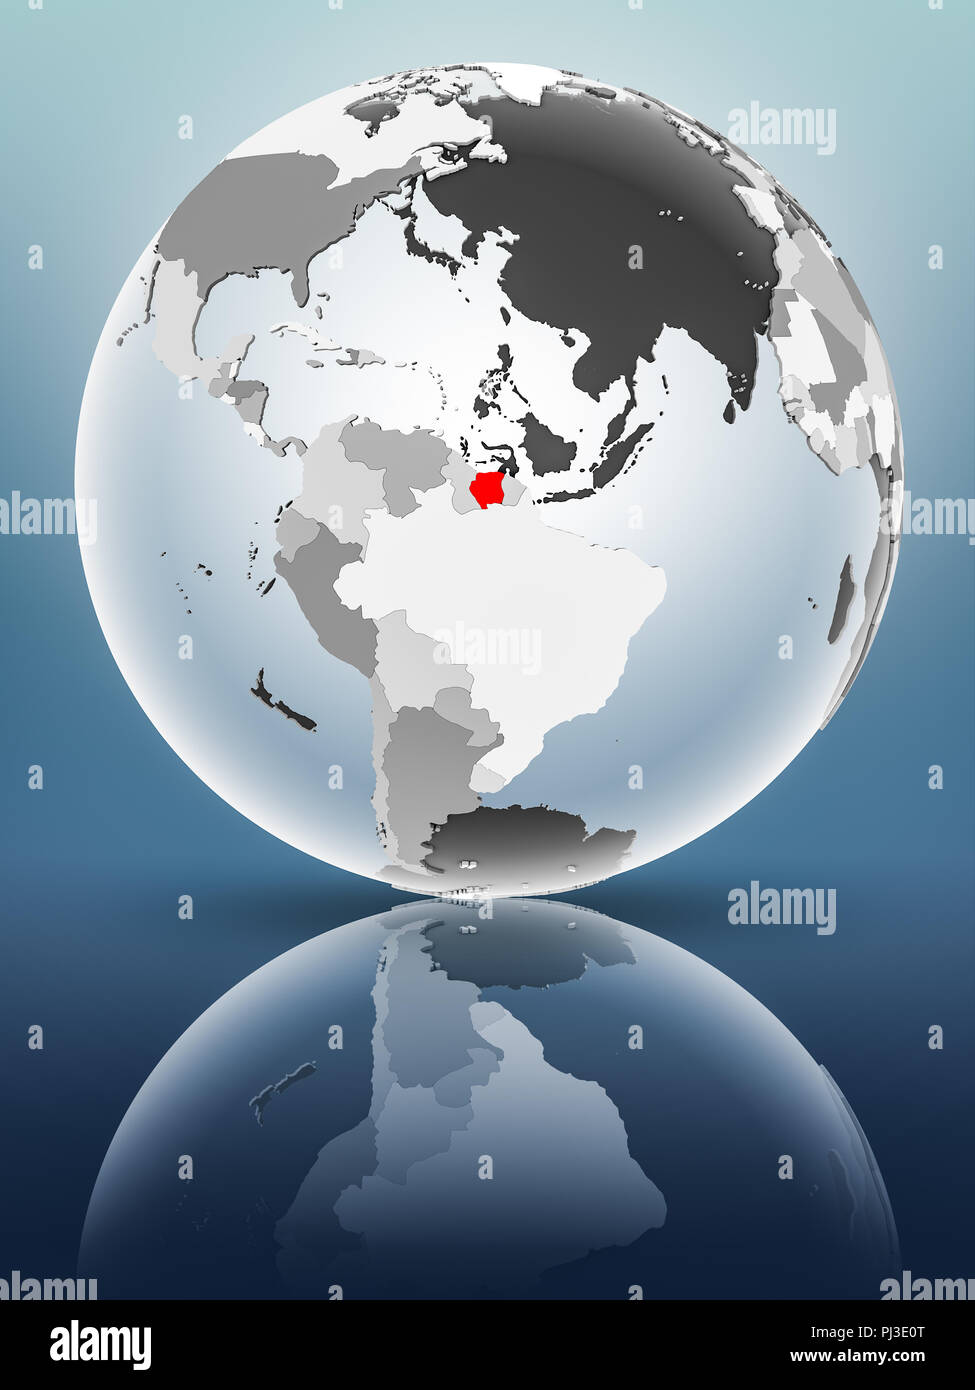 Suriname on globe with translucent oceans on shiny surface. 3D illustration. - Stock Image